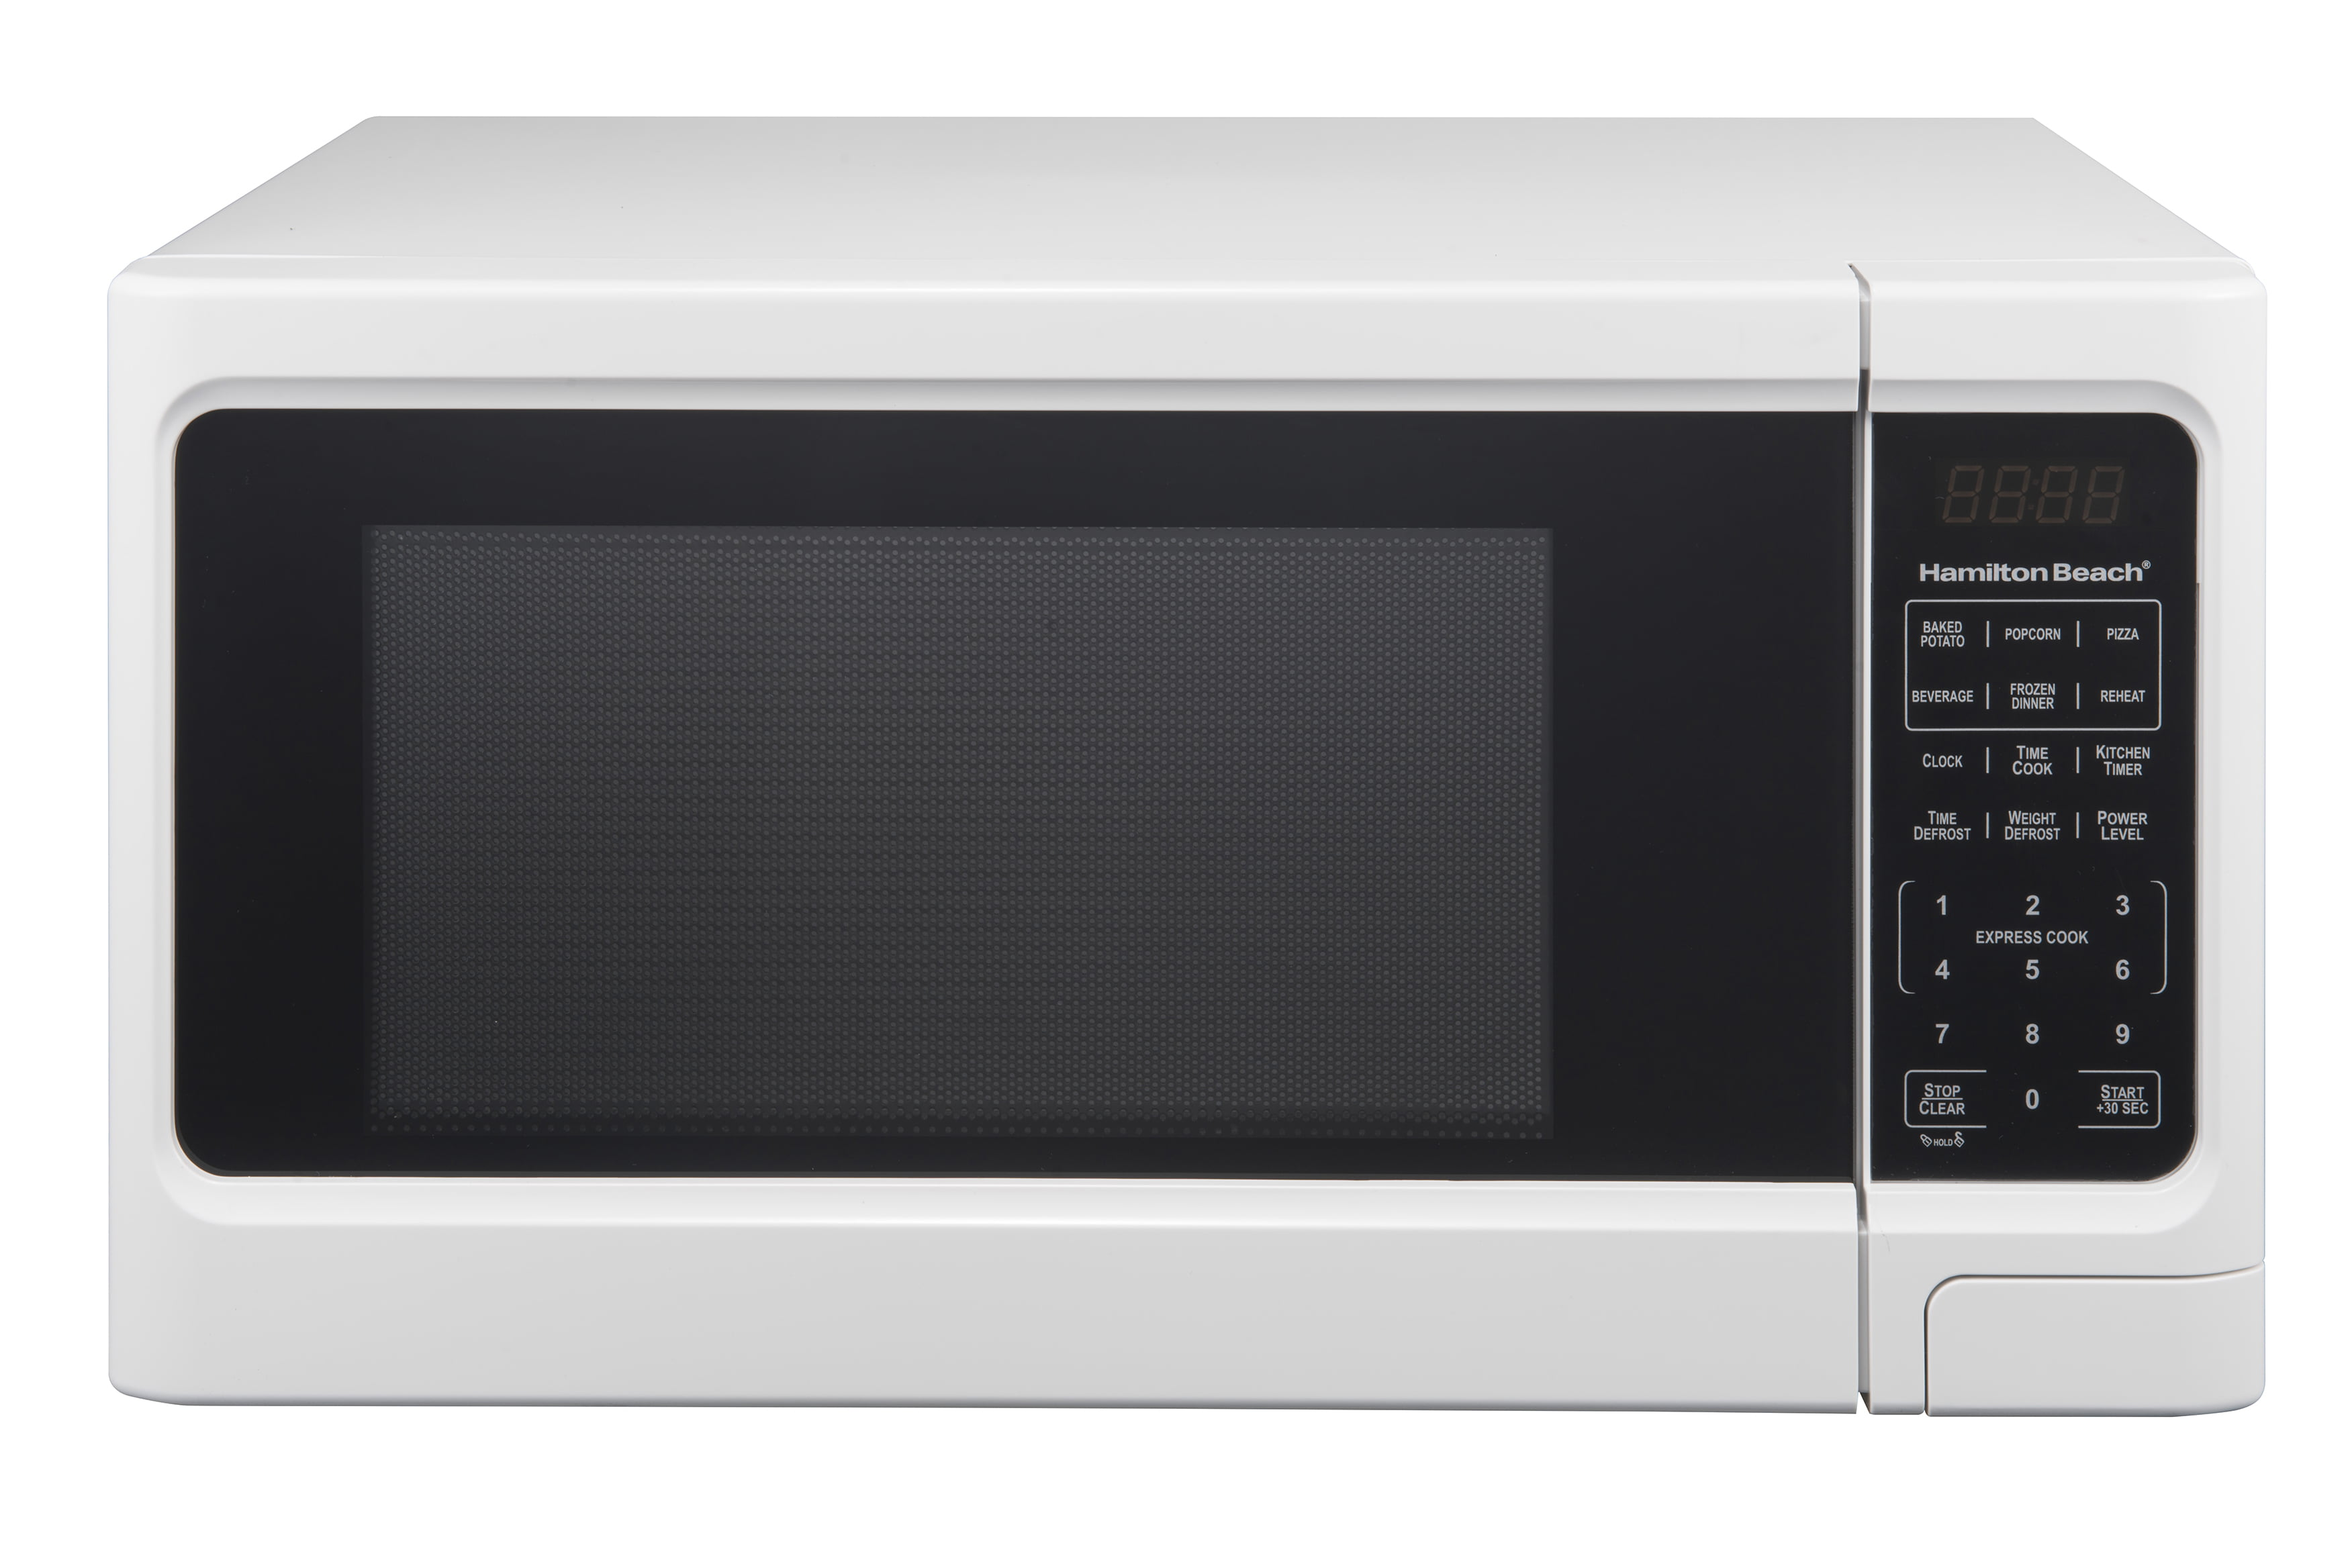 Hamilton Beach 1.1 Cu. Ft. Digital White Microwave Oven, 1 Each